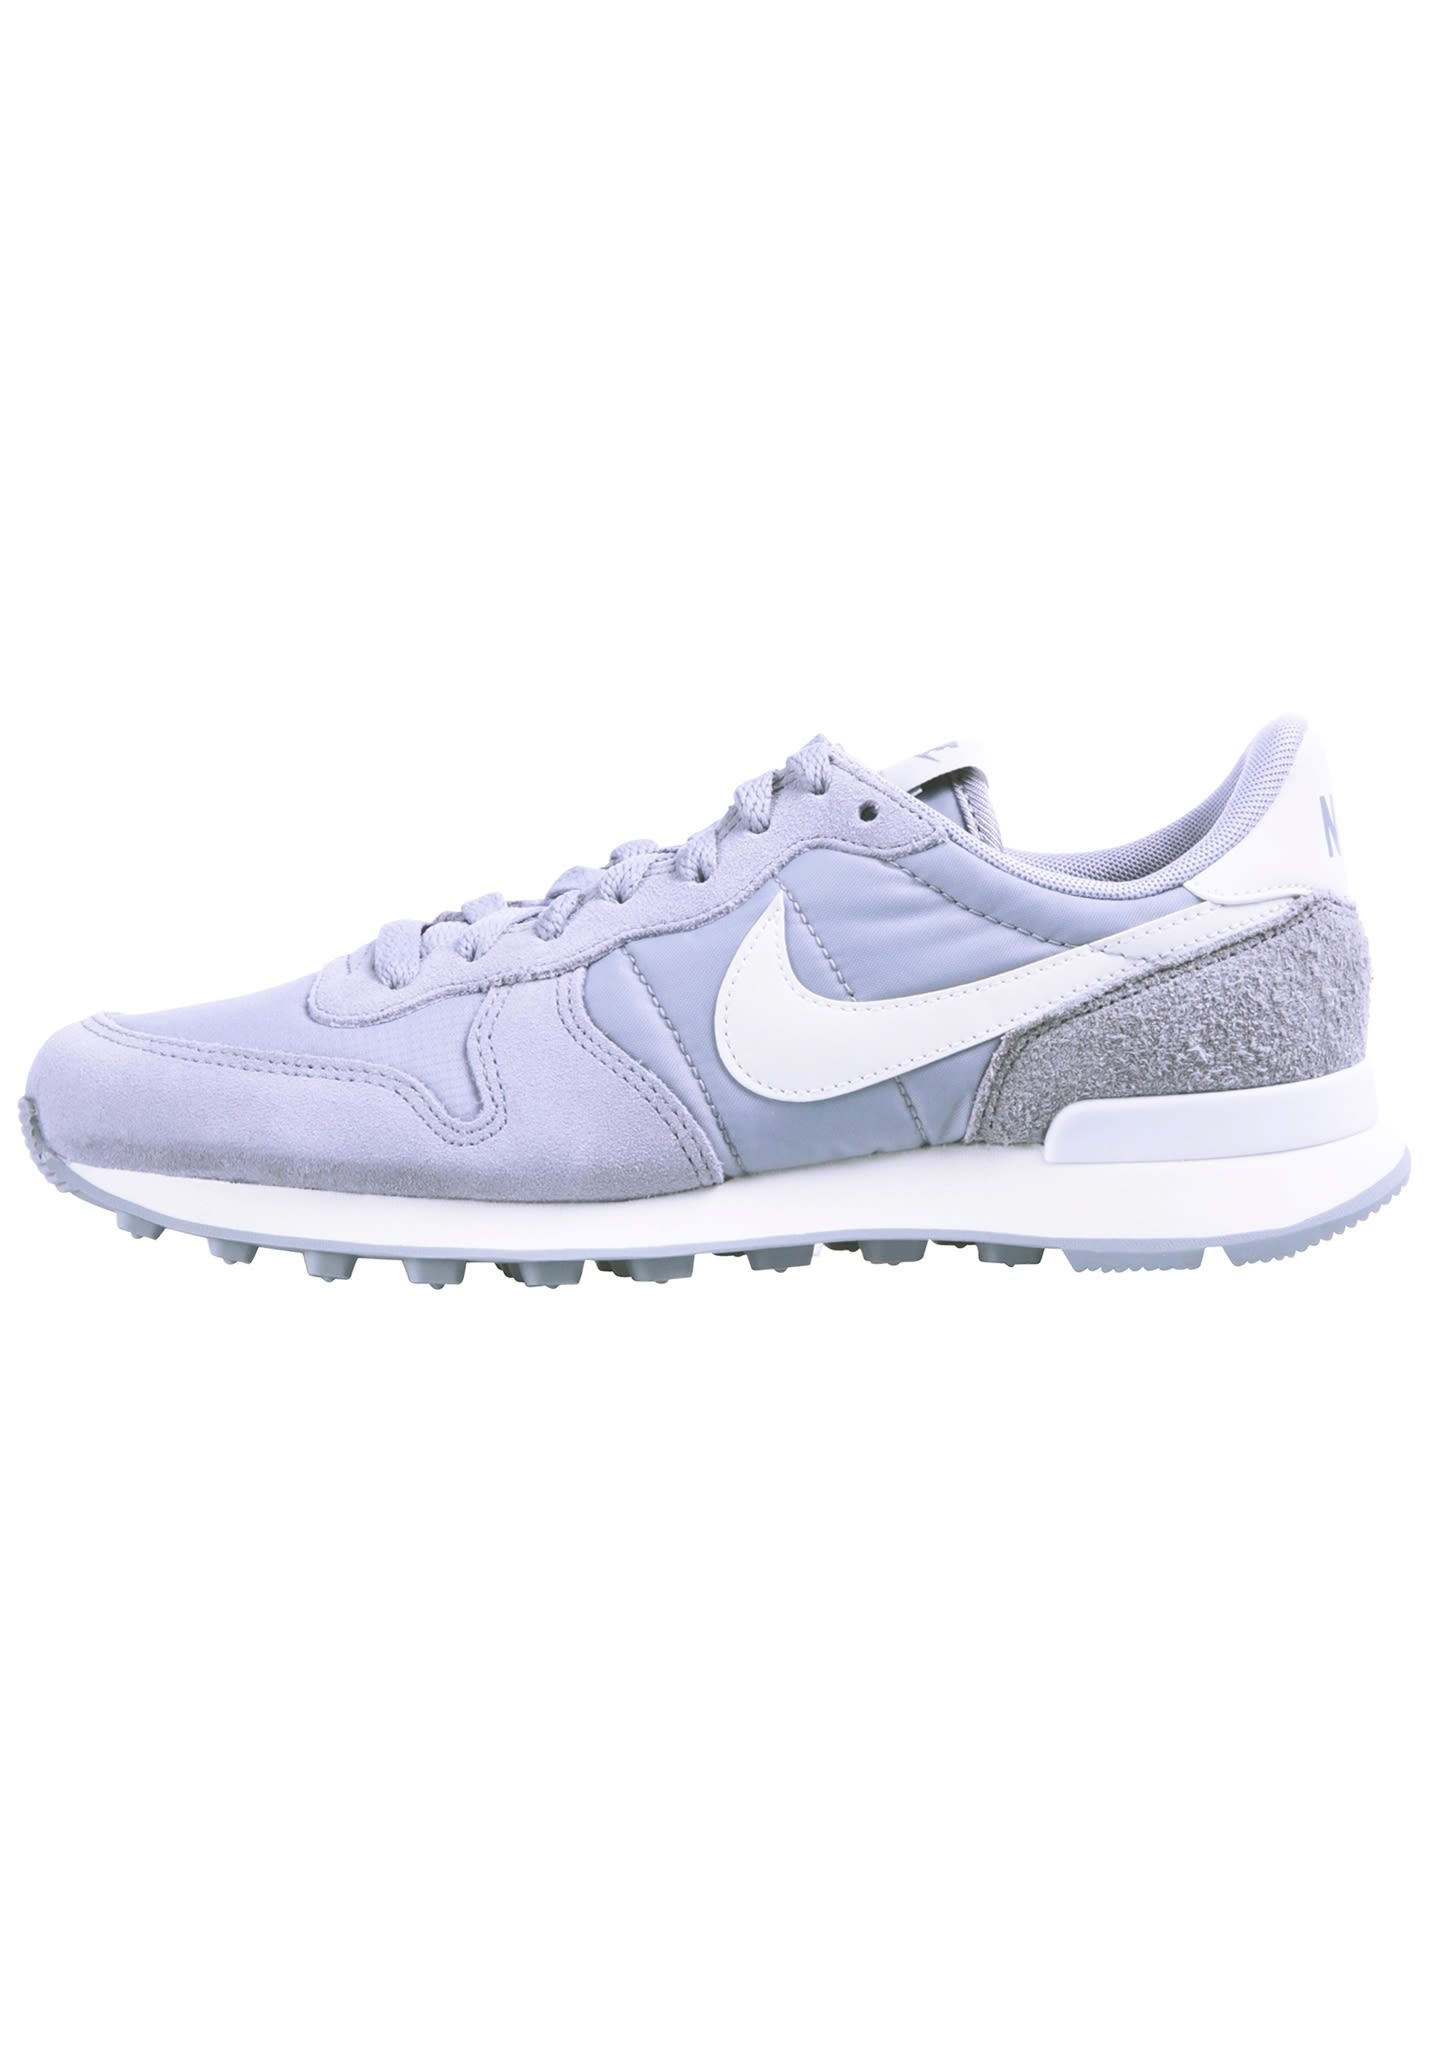 Sportswear Pour Internationalist Nike Baskets Femme Gris XiOPkZu